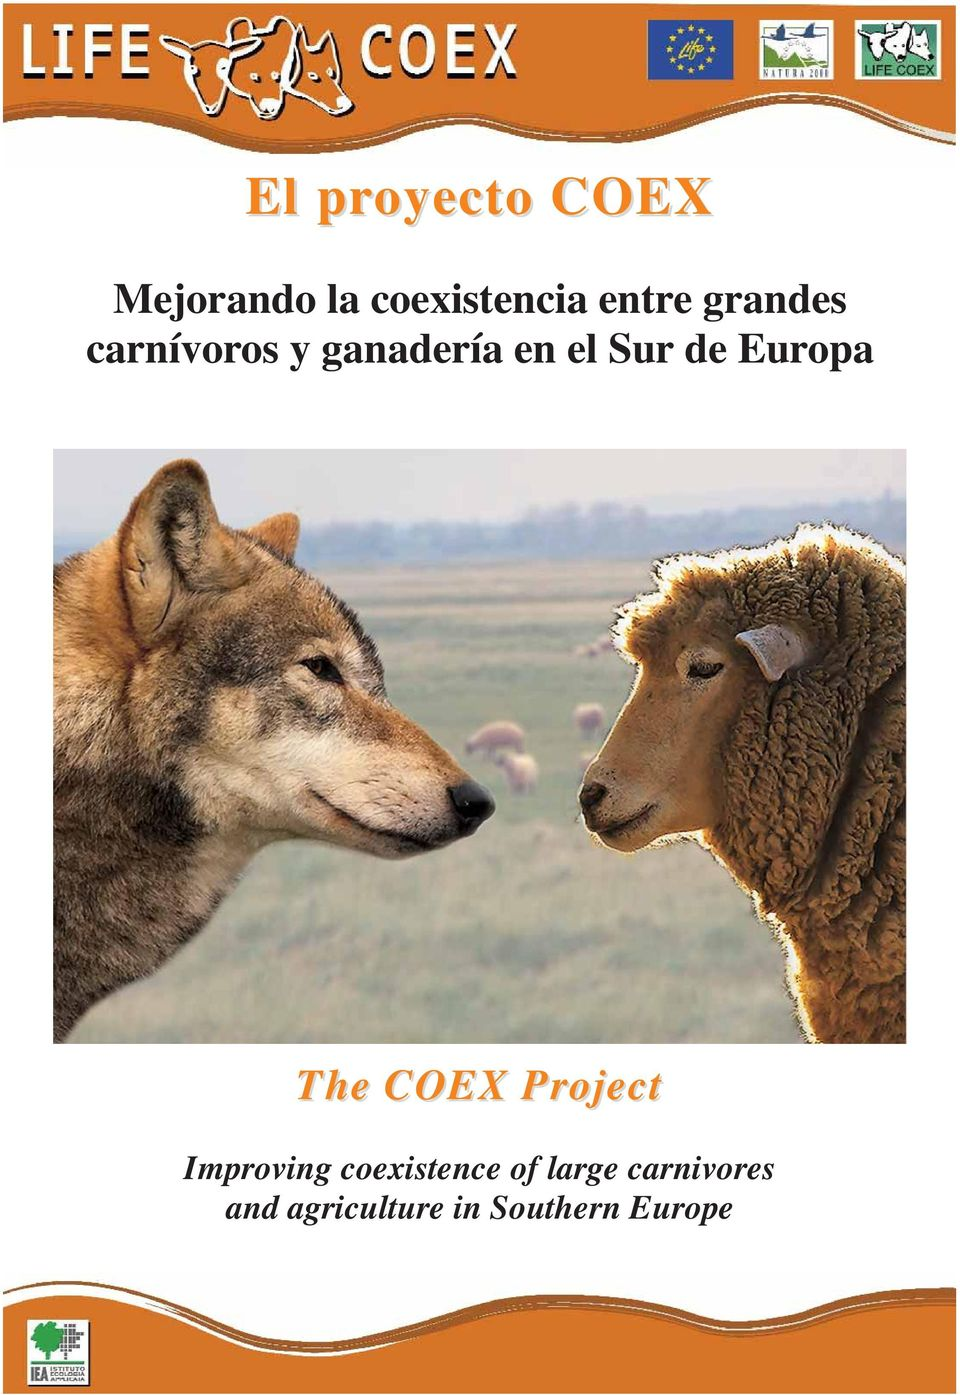 Europa The COEX Project Improving coexistence of